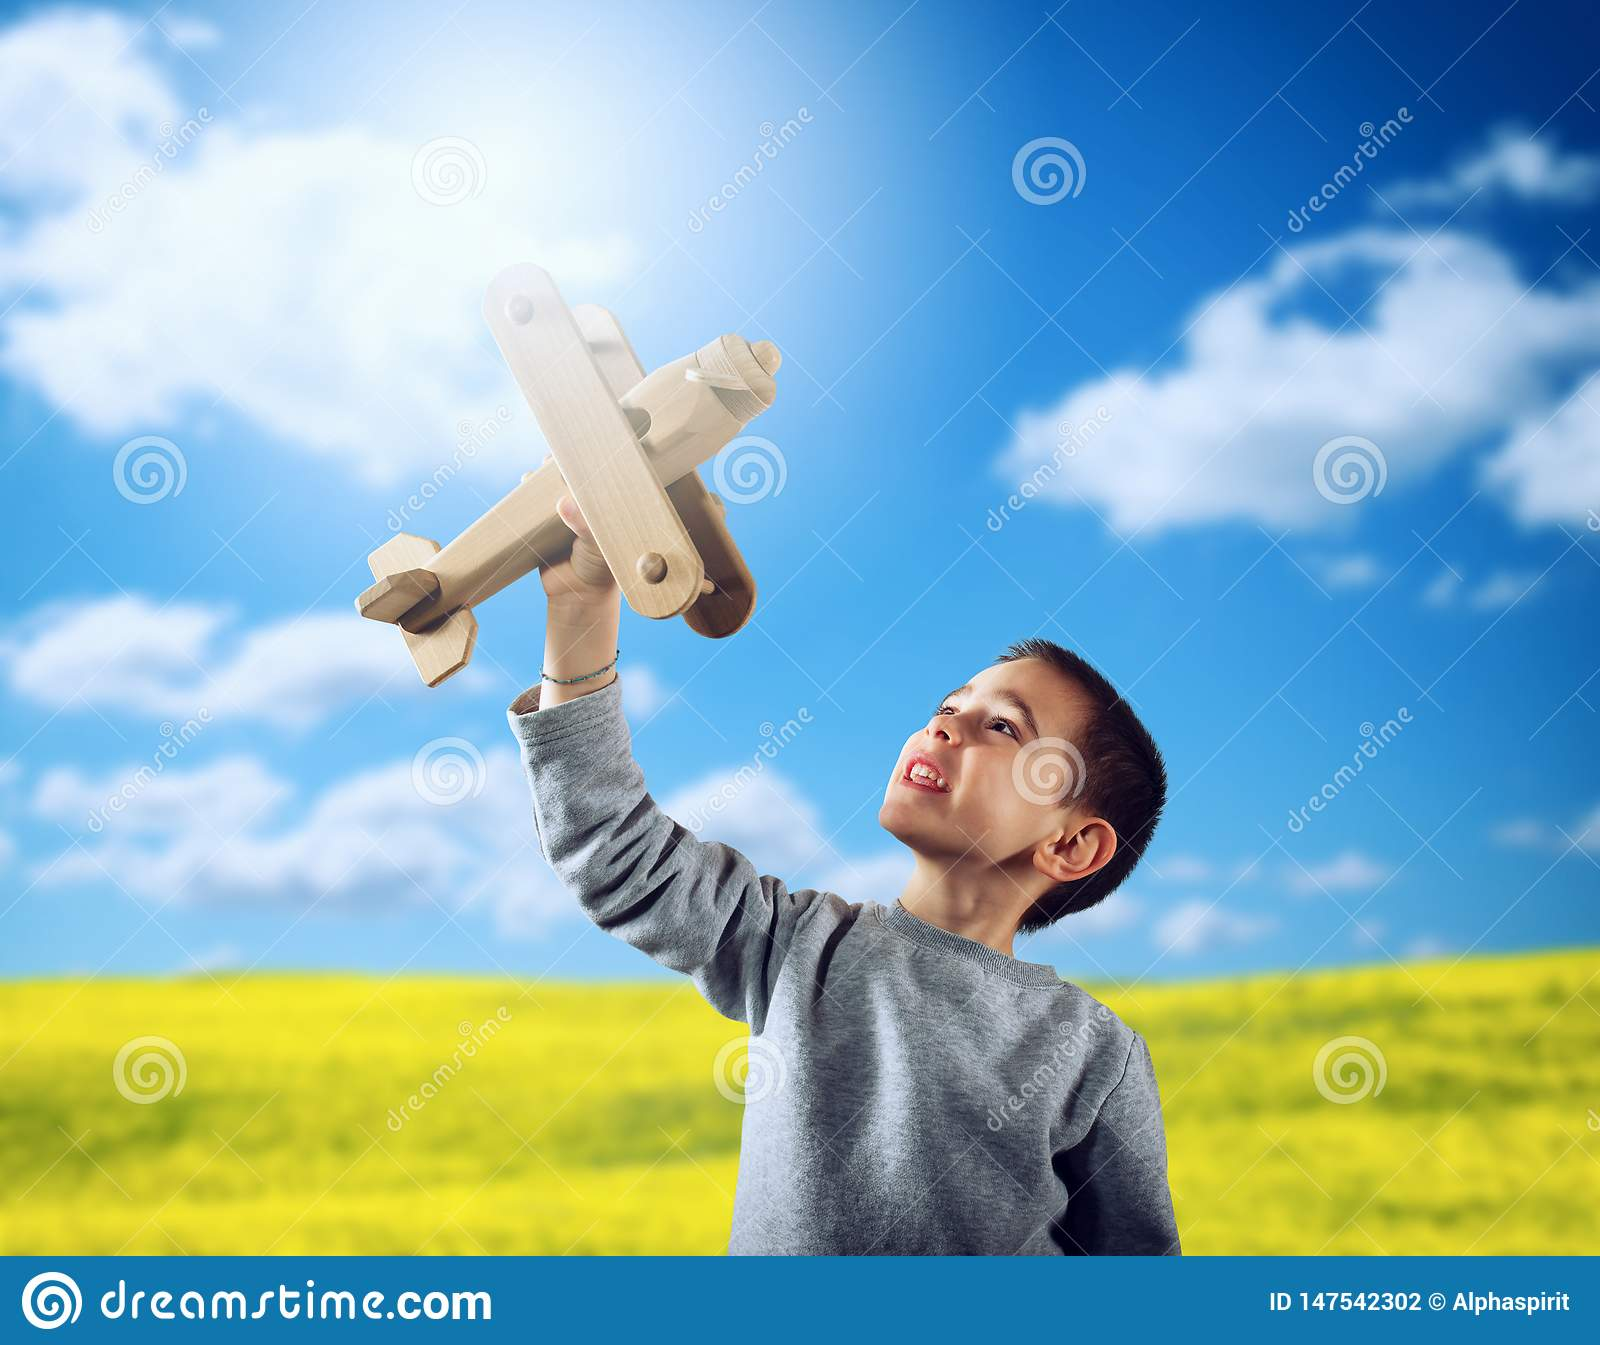 Kid plays with a wooden toy airplane